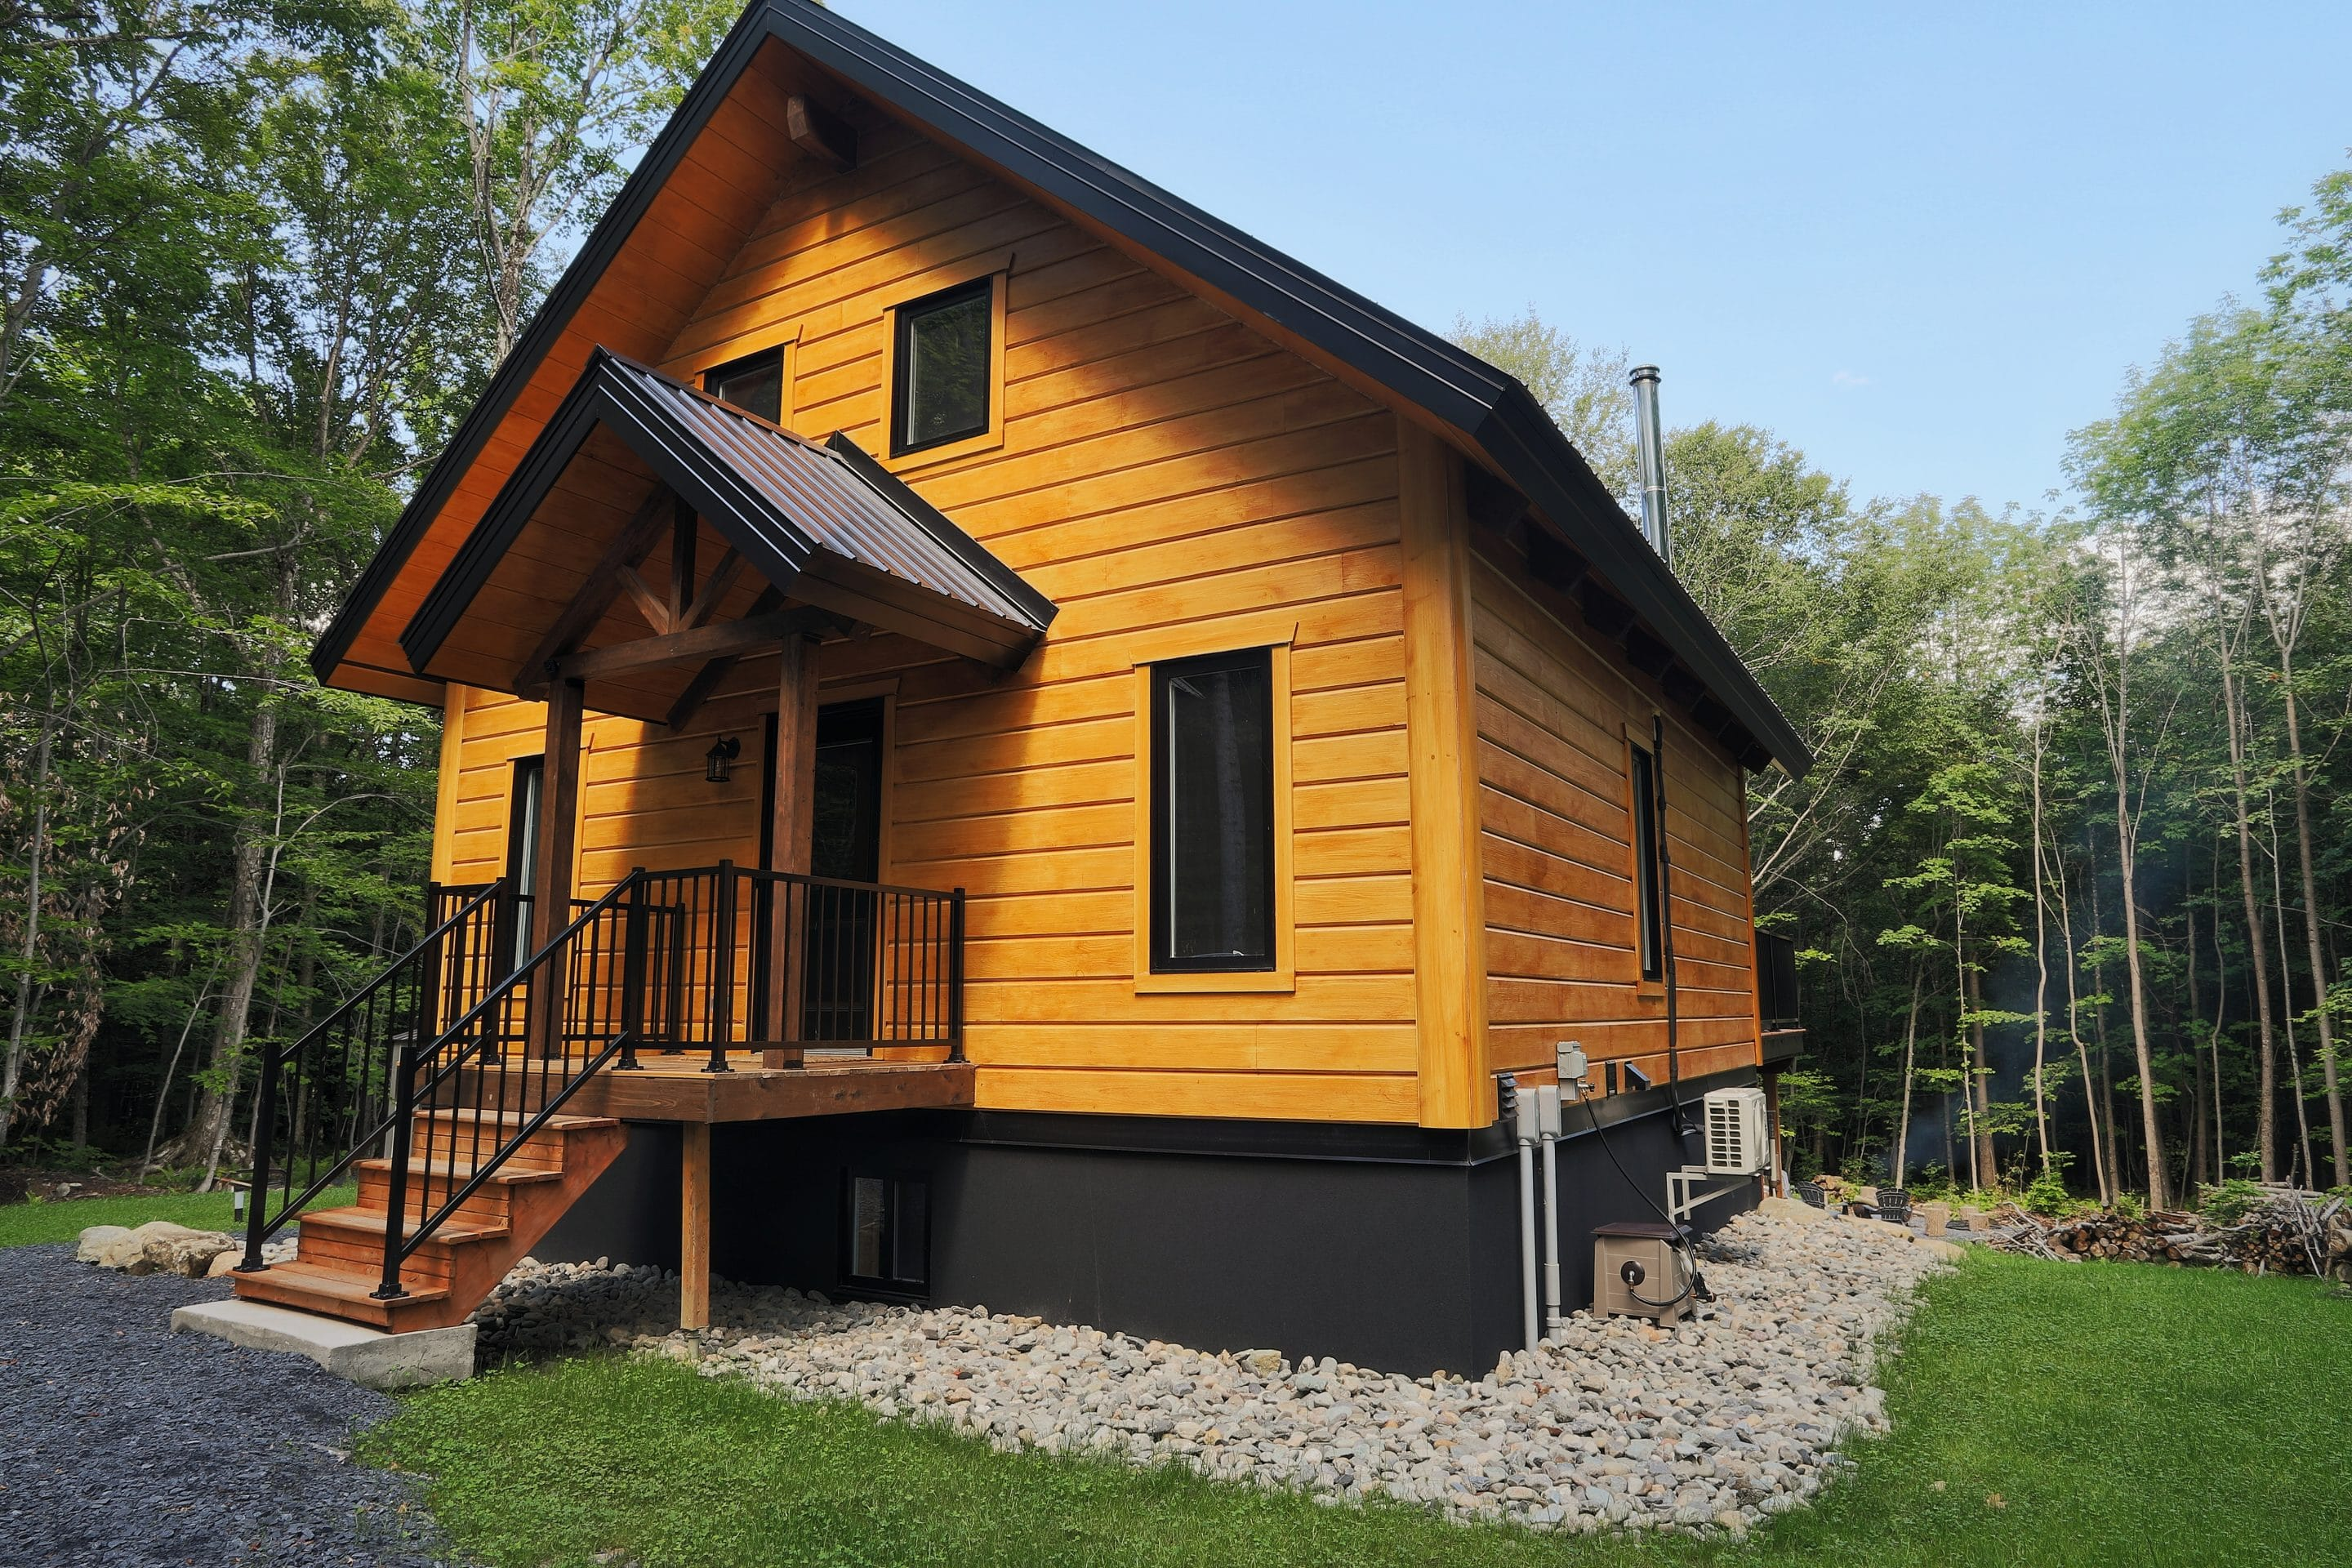 Photos of the chalet, number 26